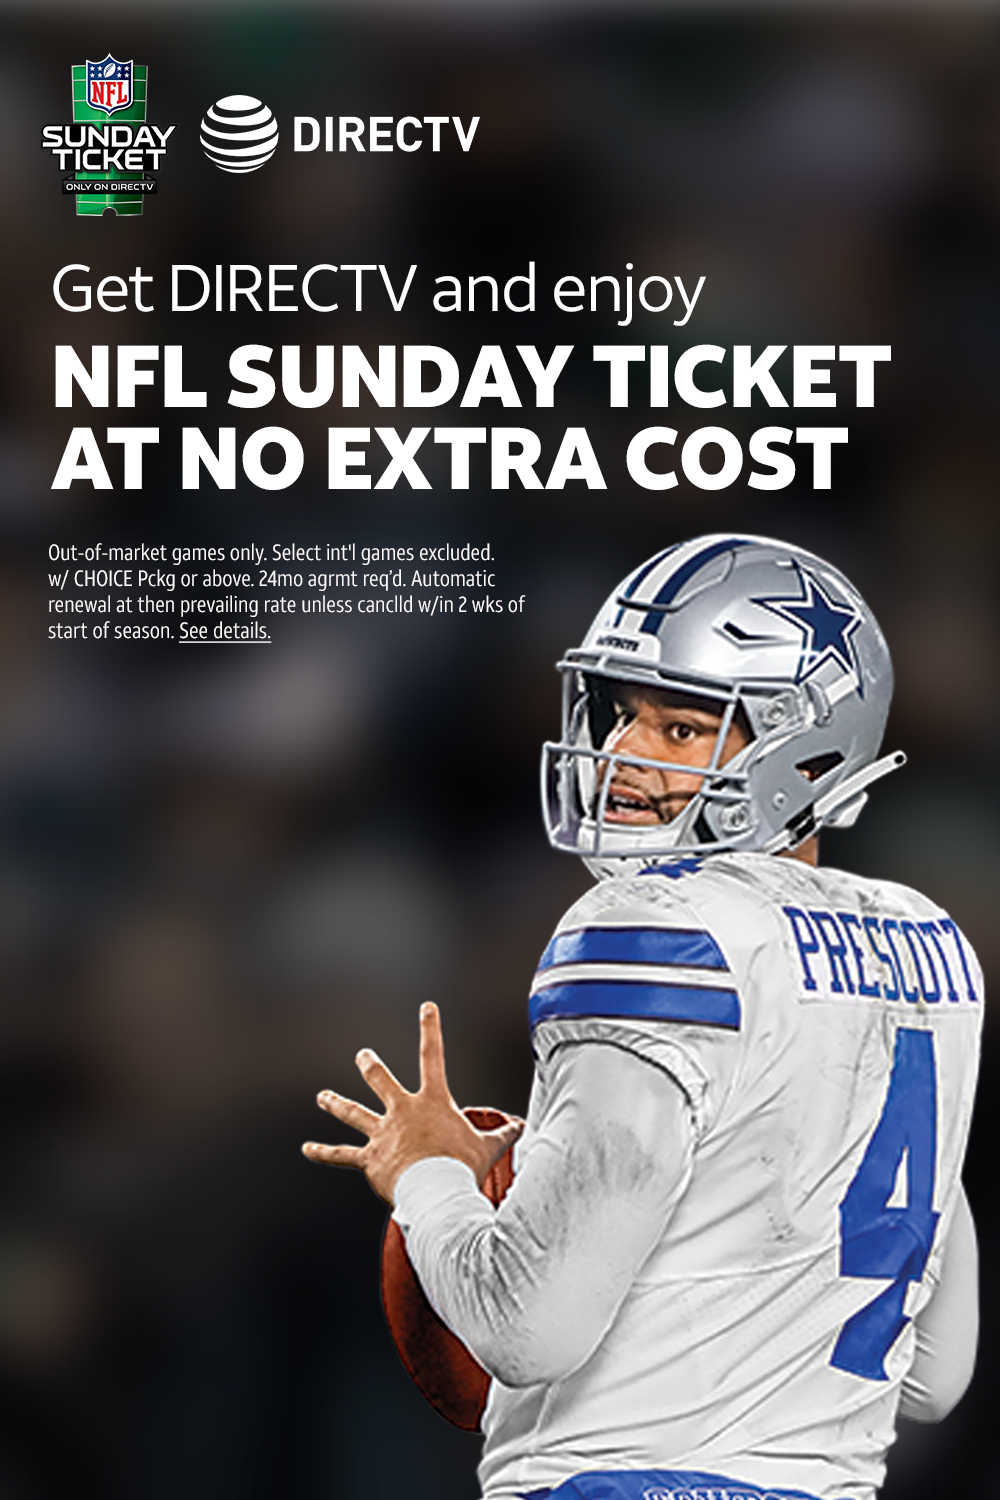 Watch every live game, every Sunday with NFL SUNDAY TICKET